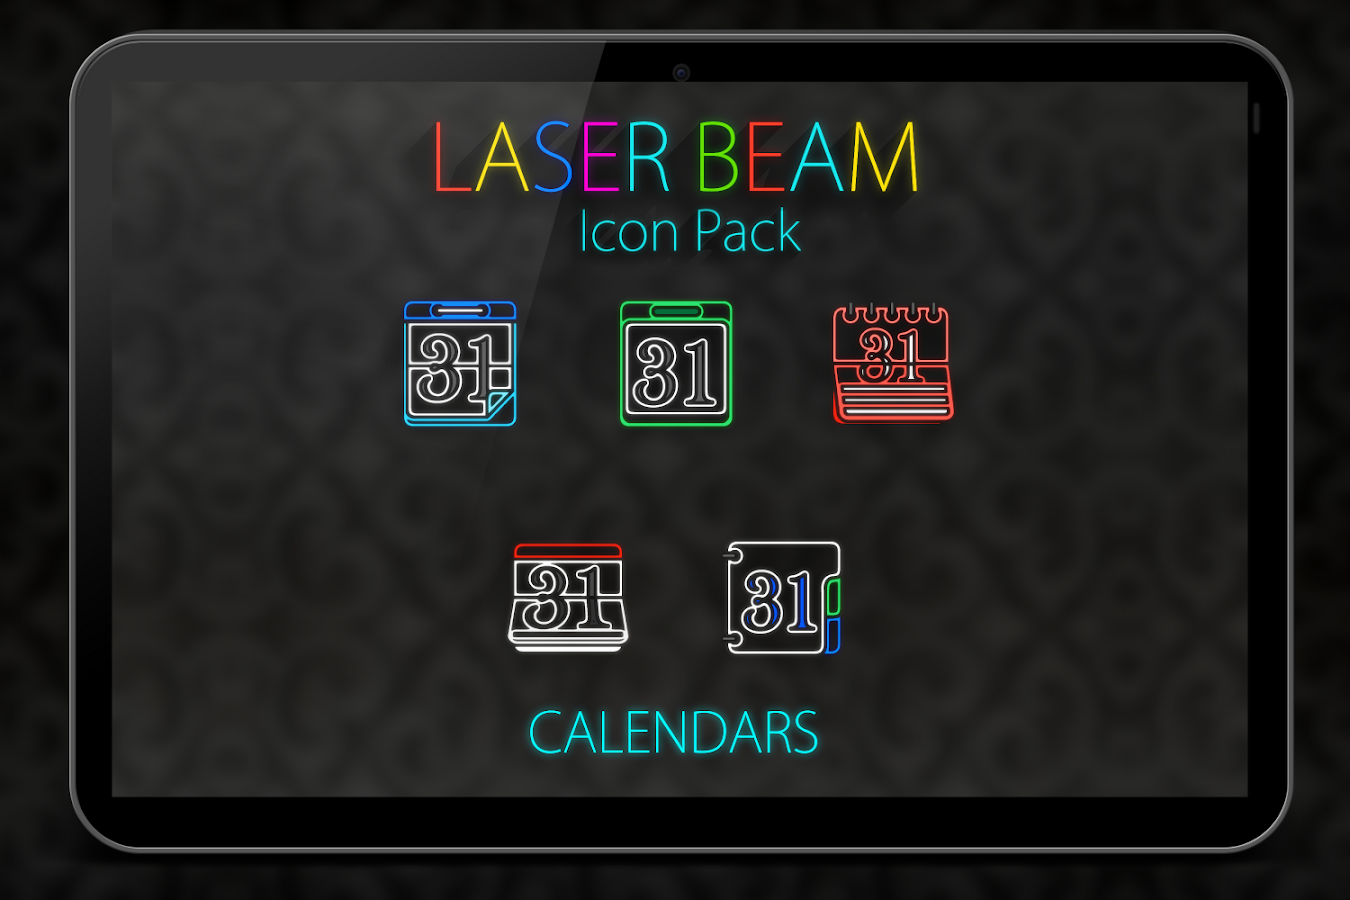 Laser Beam Icon Pack Screenshot 11